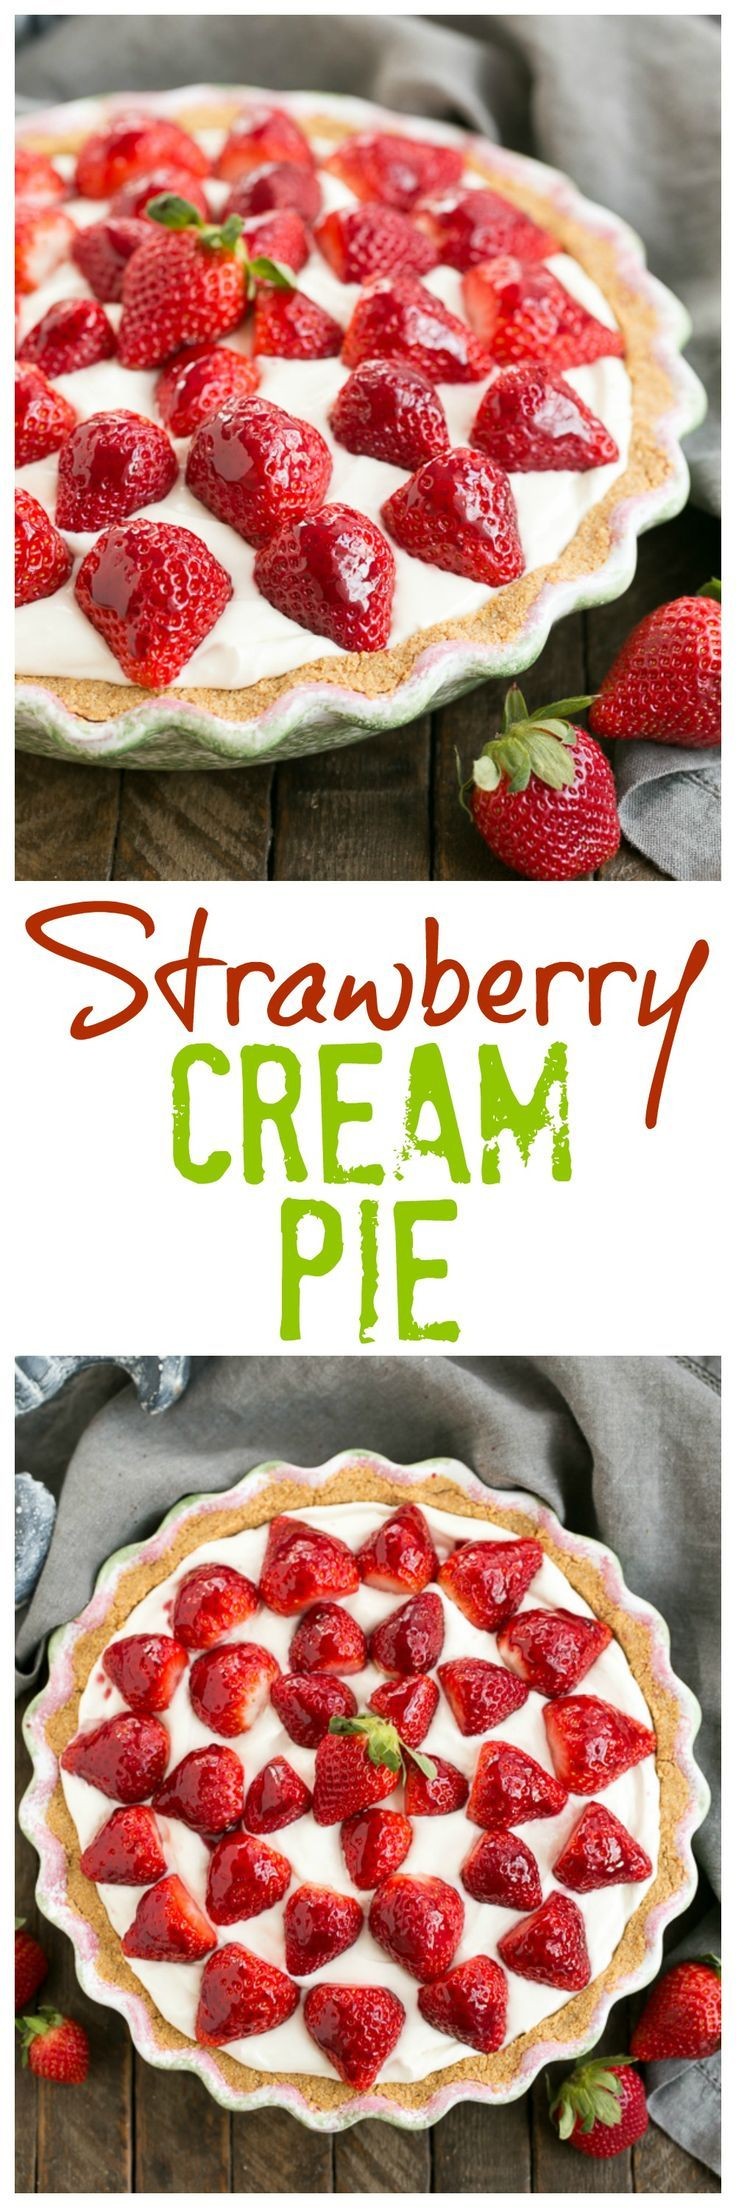 Strawberry Cream Pie | A dreamy, luscious cream pie topped with ripe berries @lizzydo